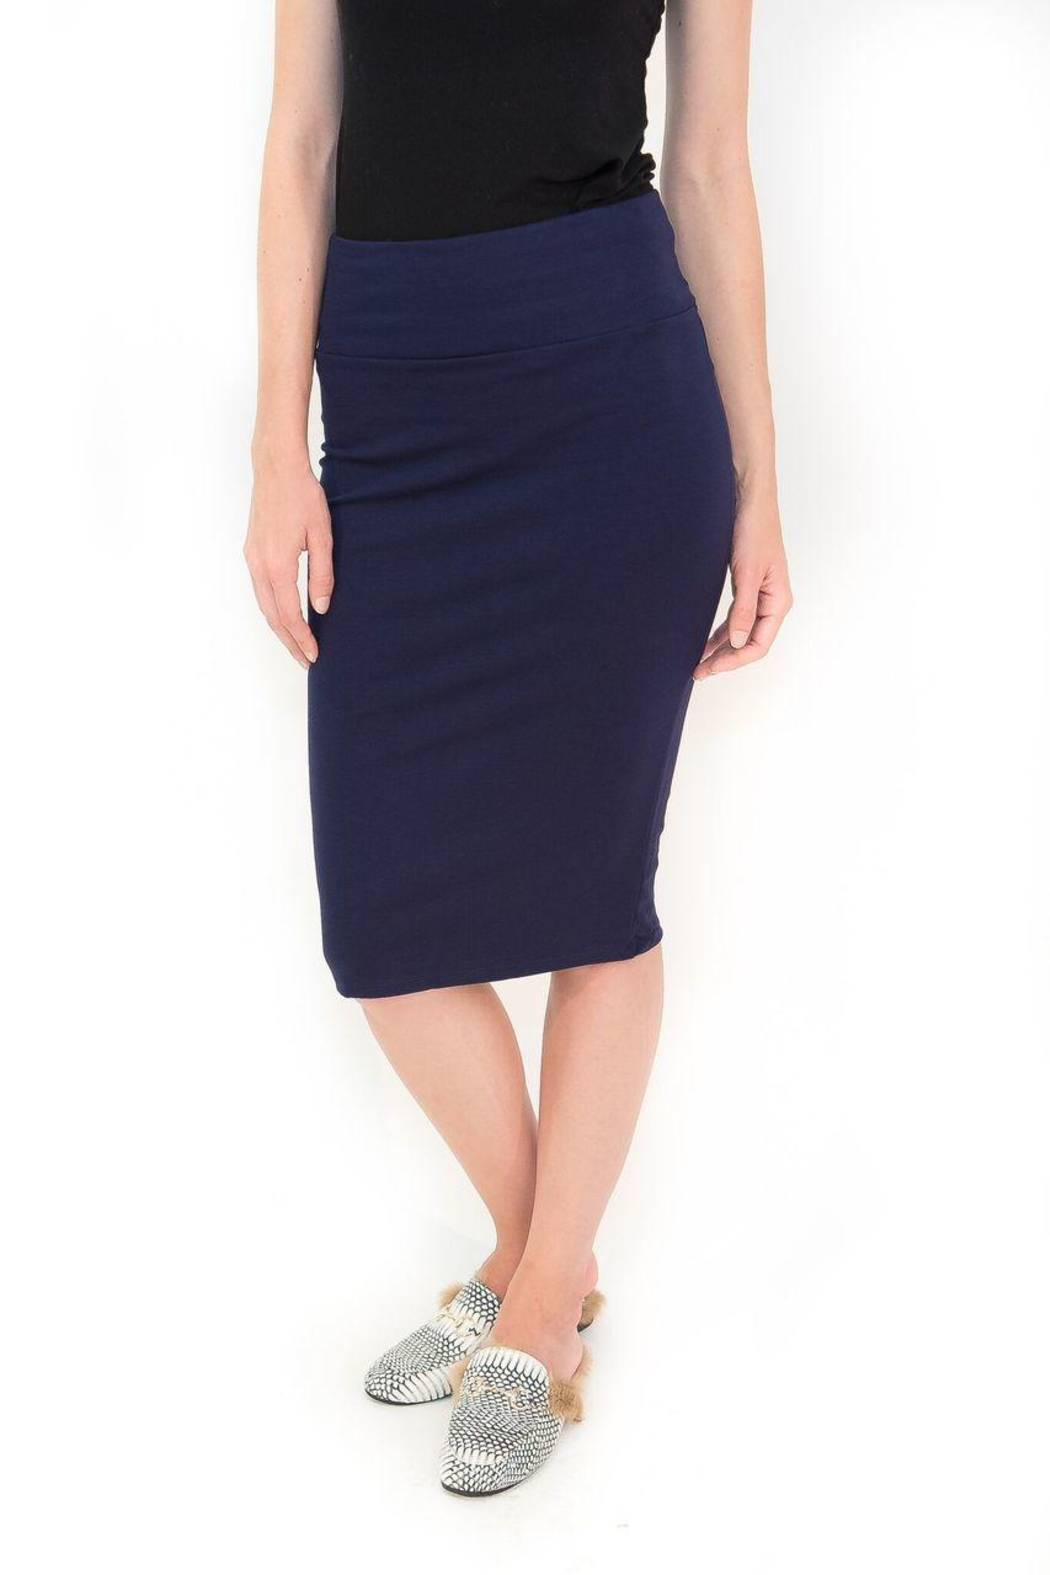 Maya's Place Knee-Length Pencil Skirt - Front Full Image